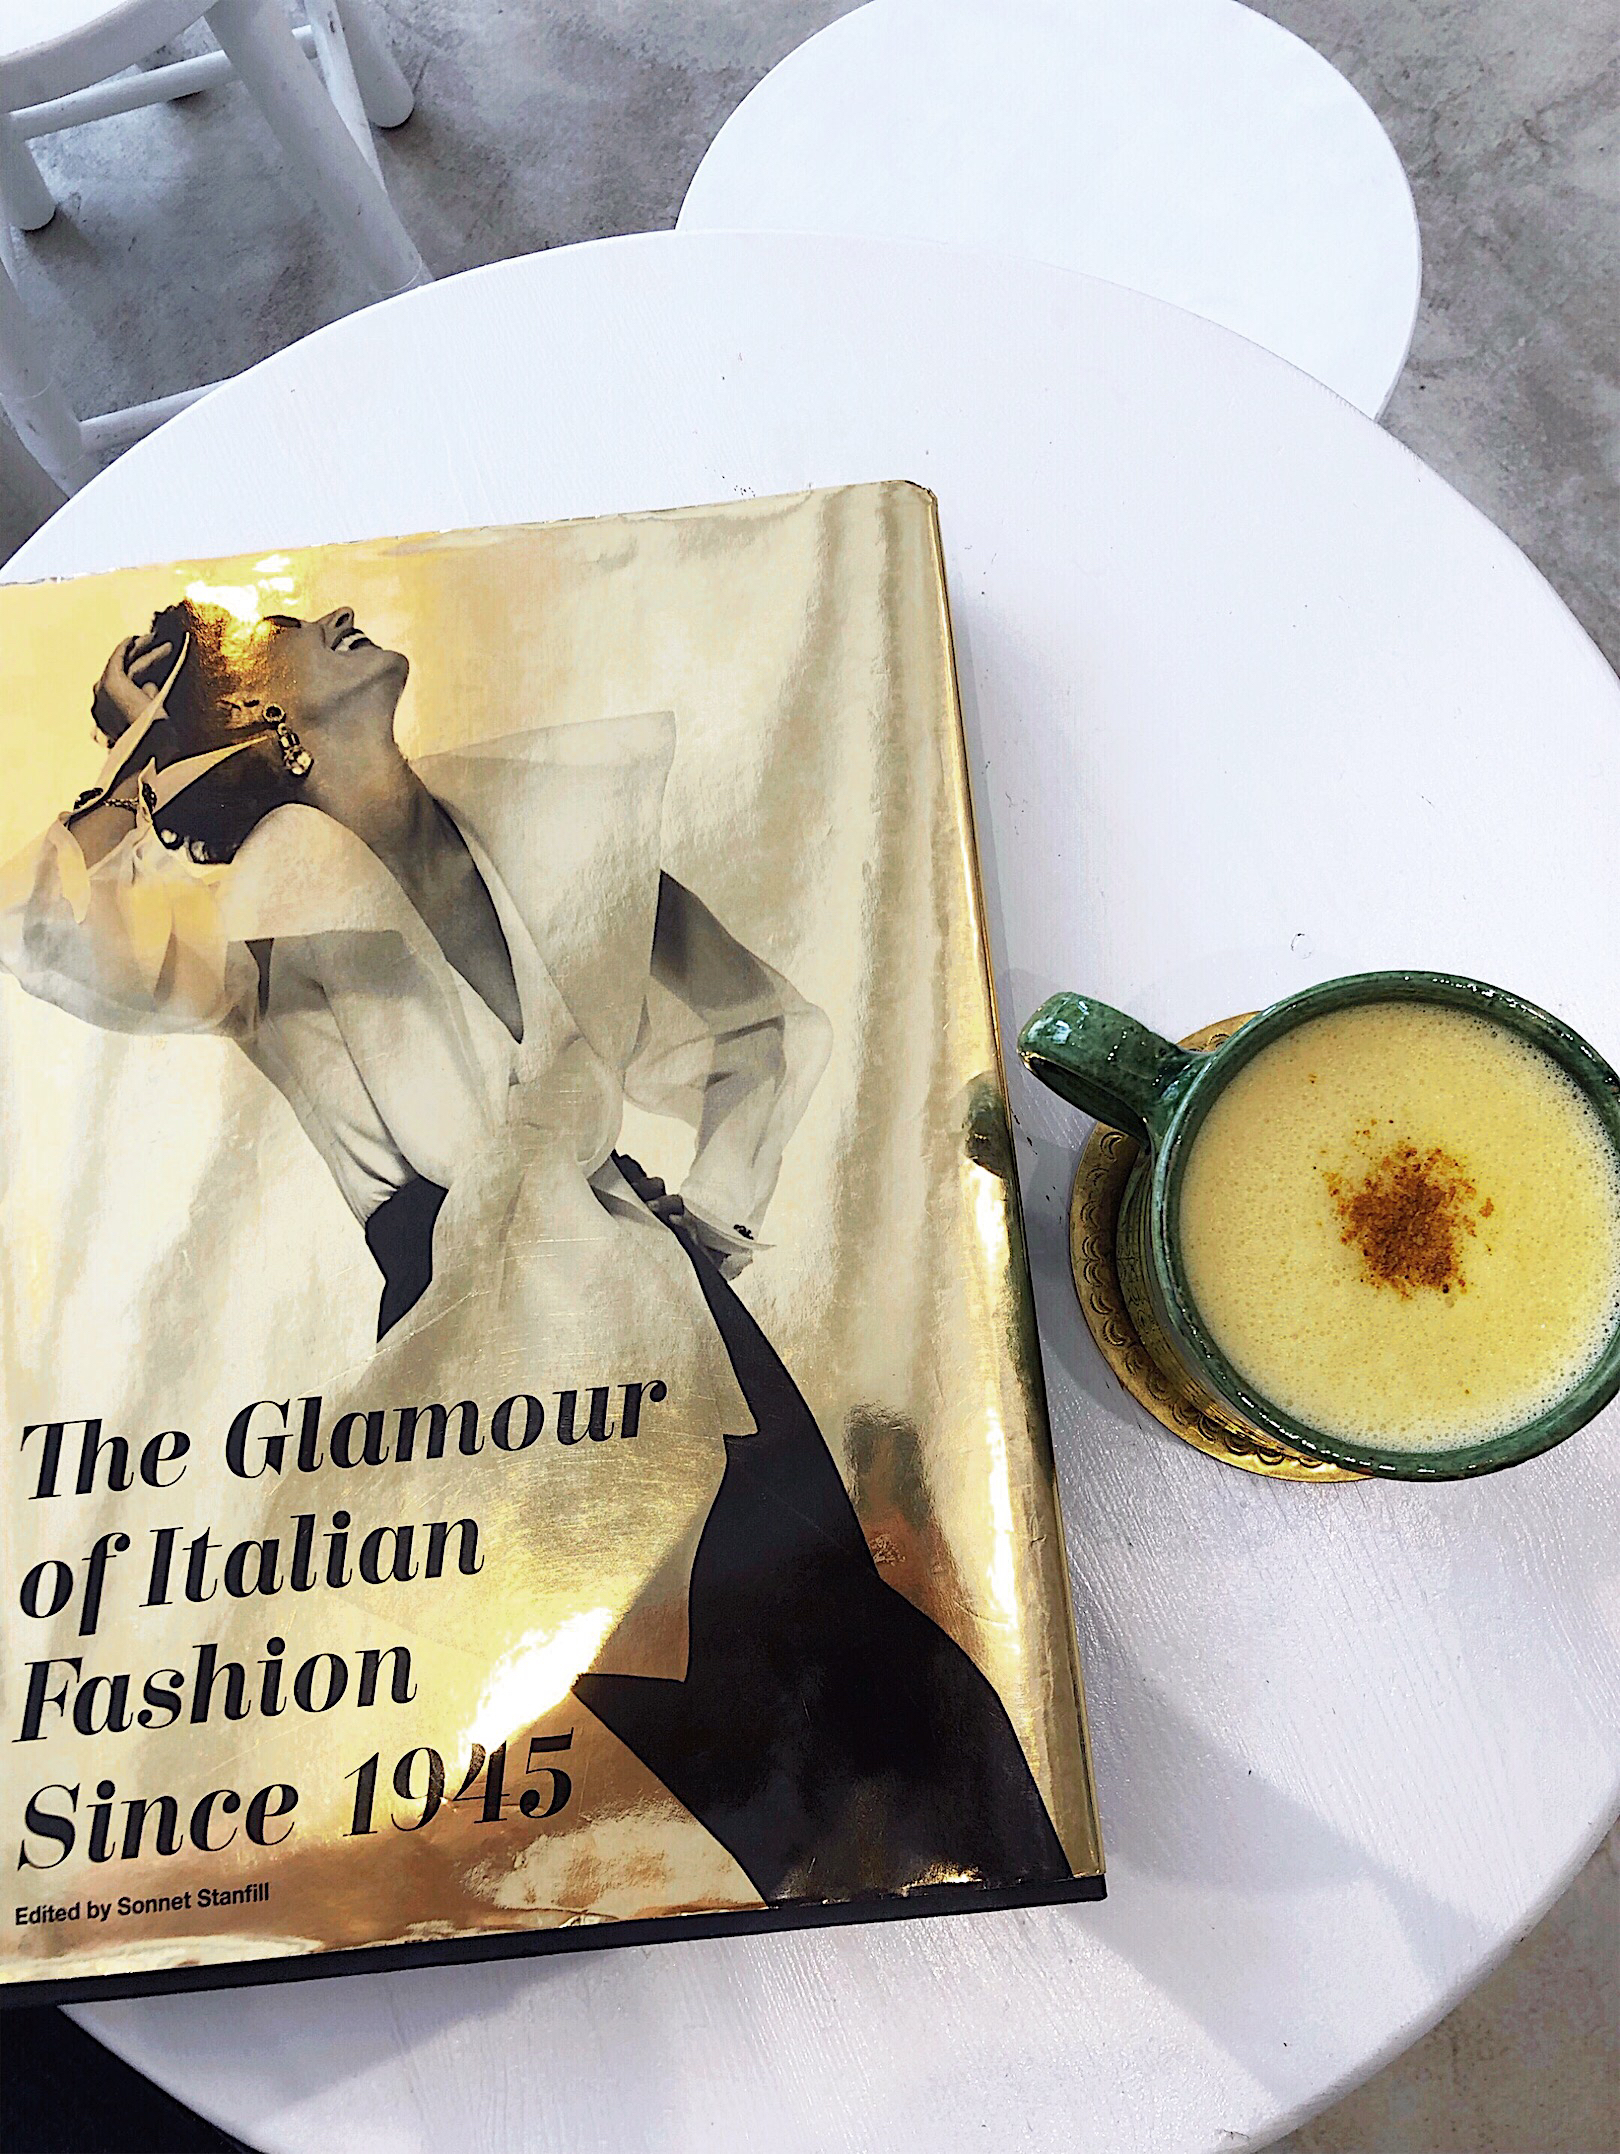 The Glamour of Italian Fashion book on the table